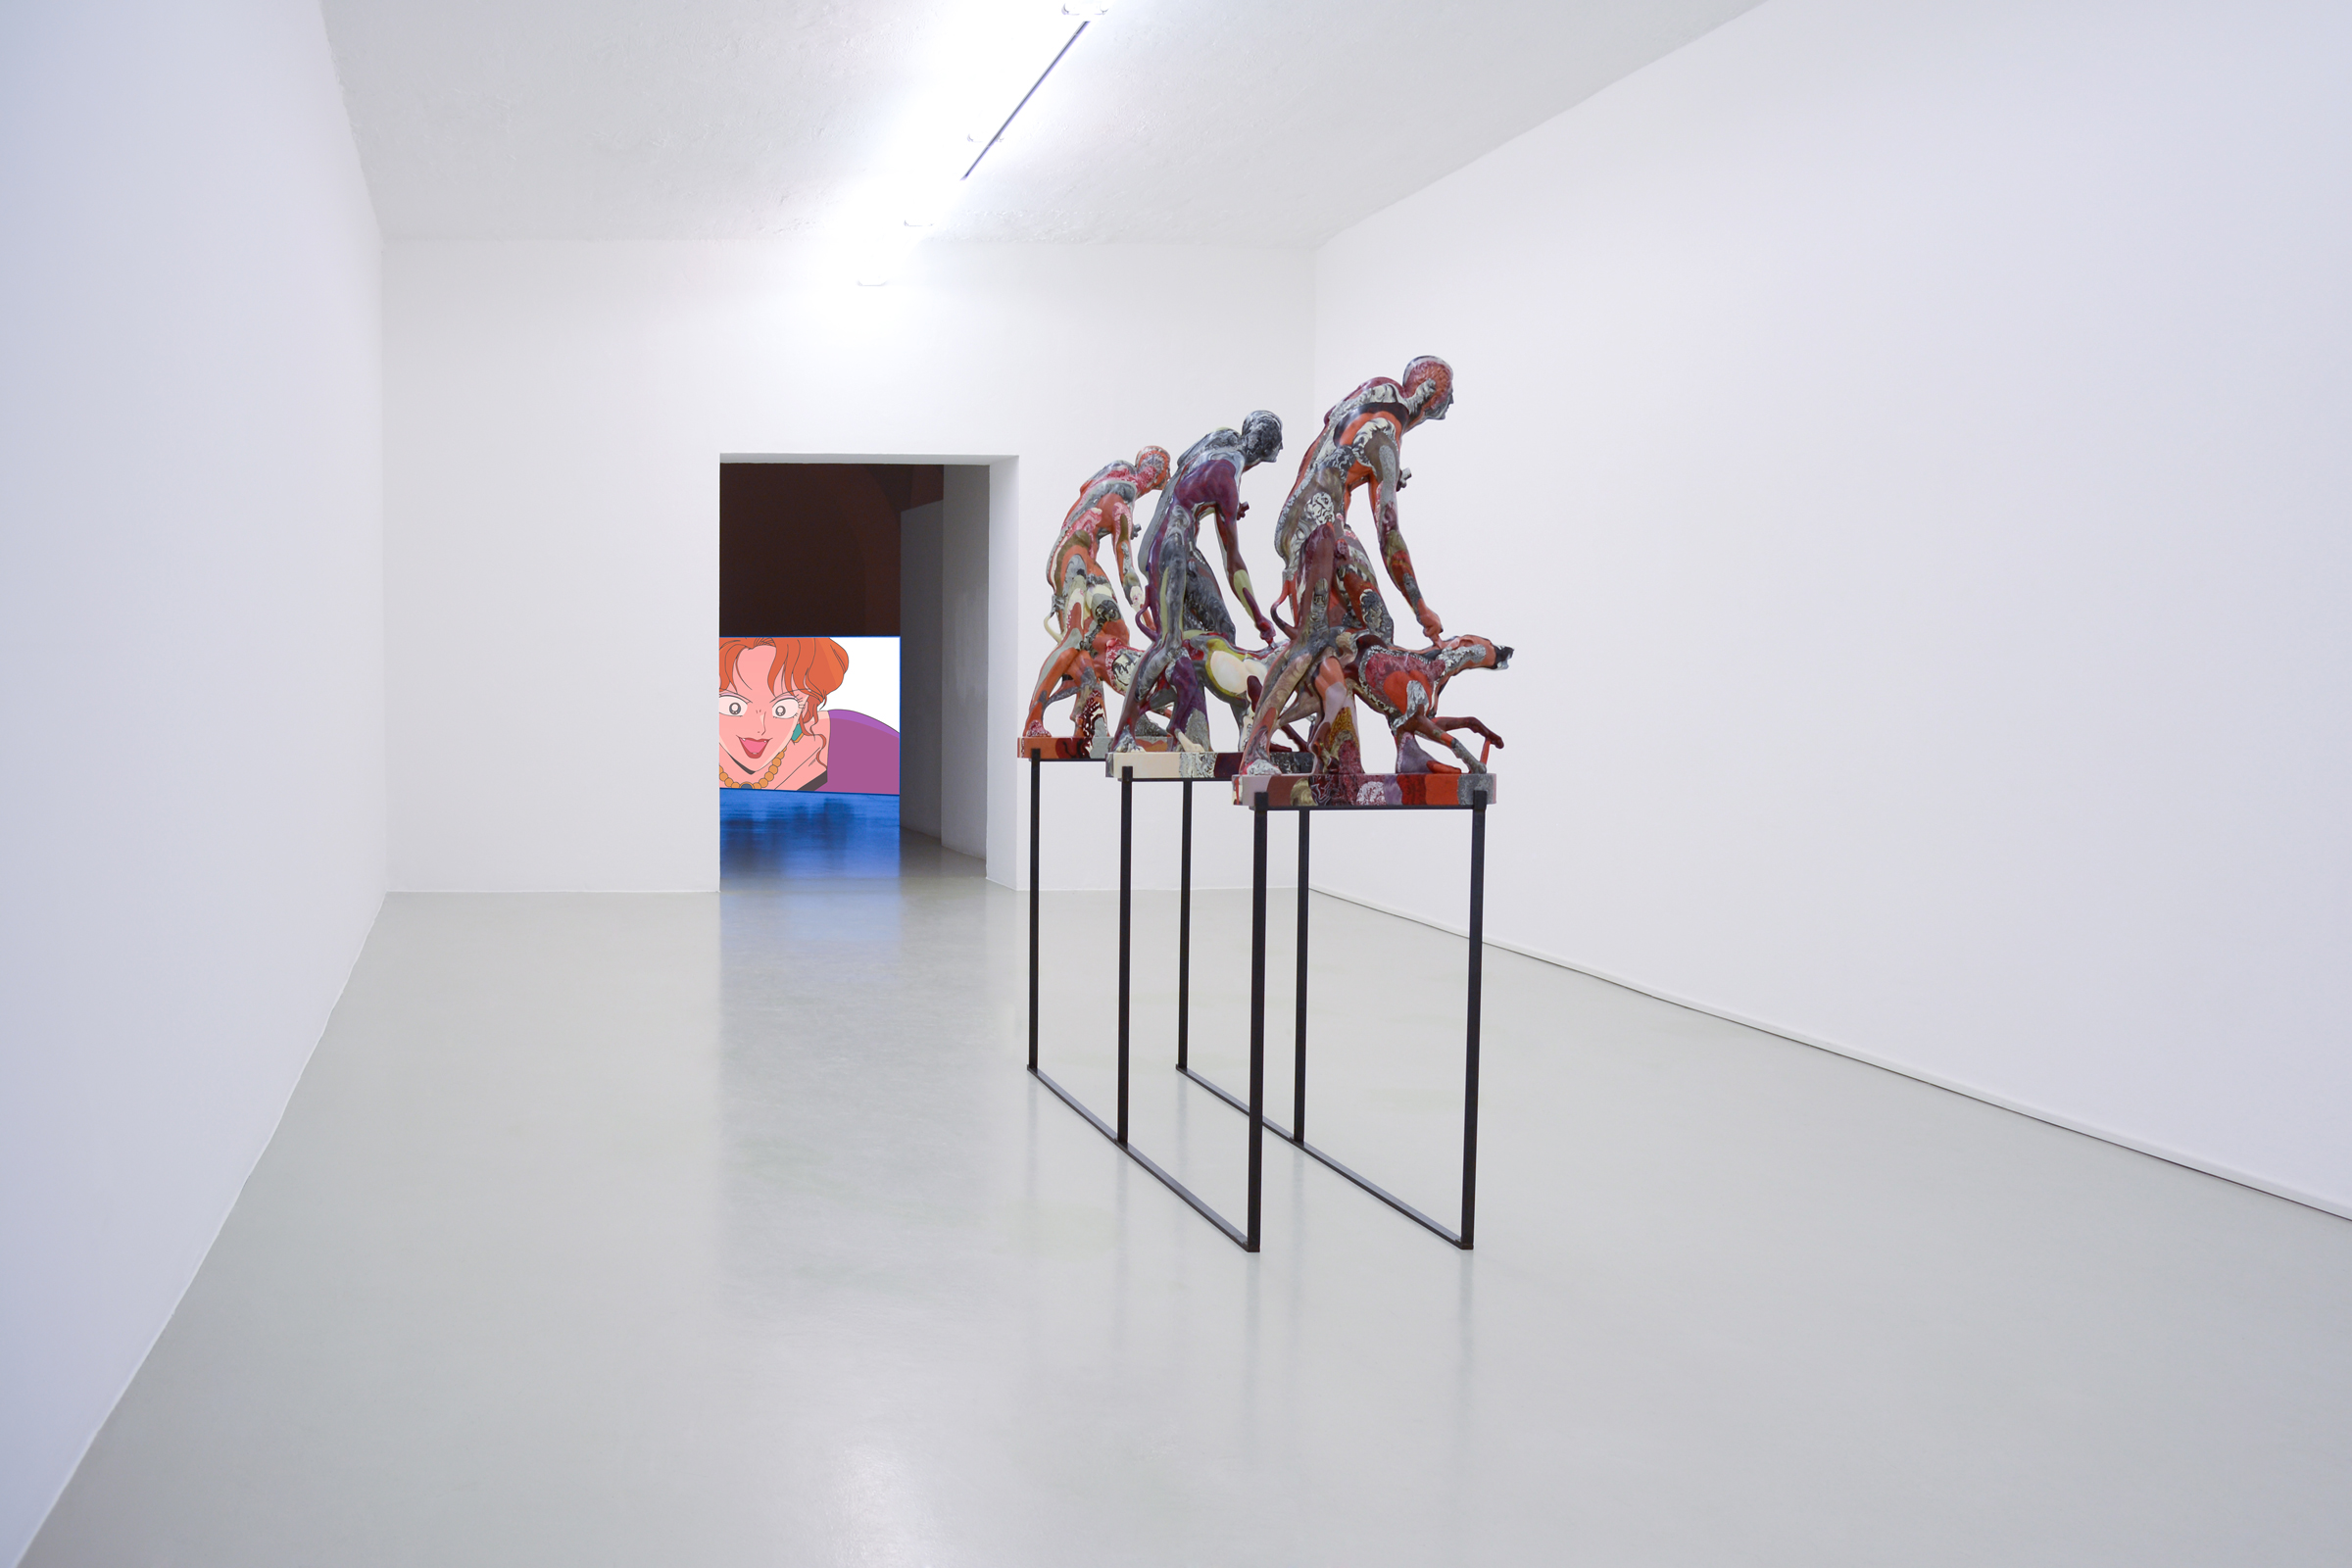 Oliver Laric, Installation view, photo by aneres, 2014